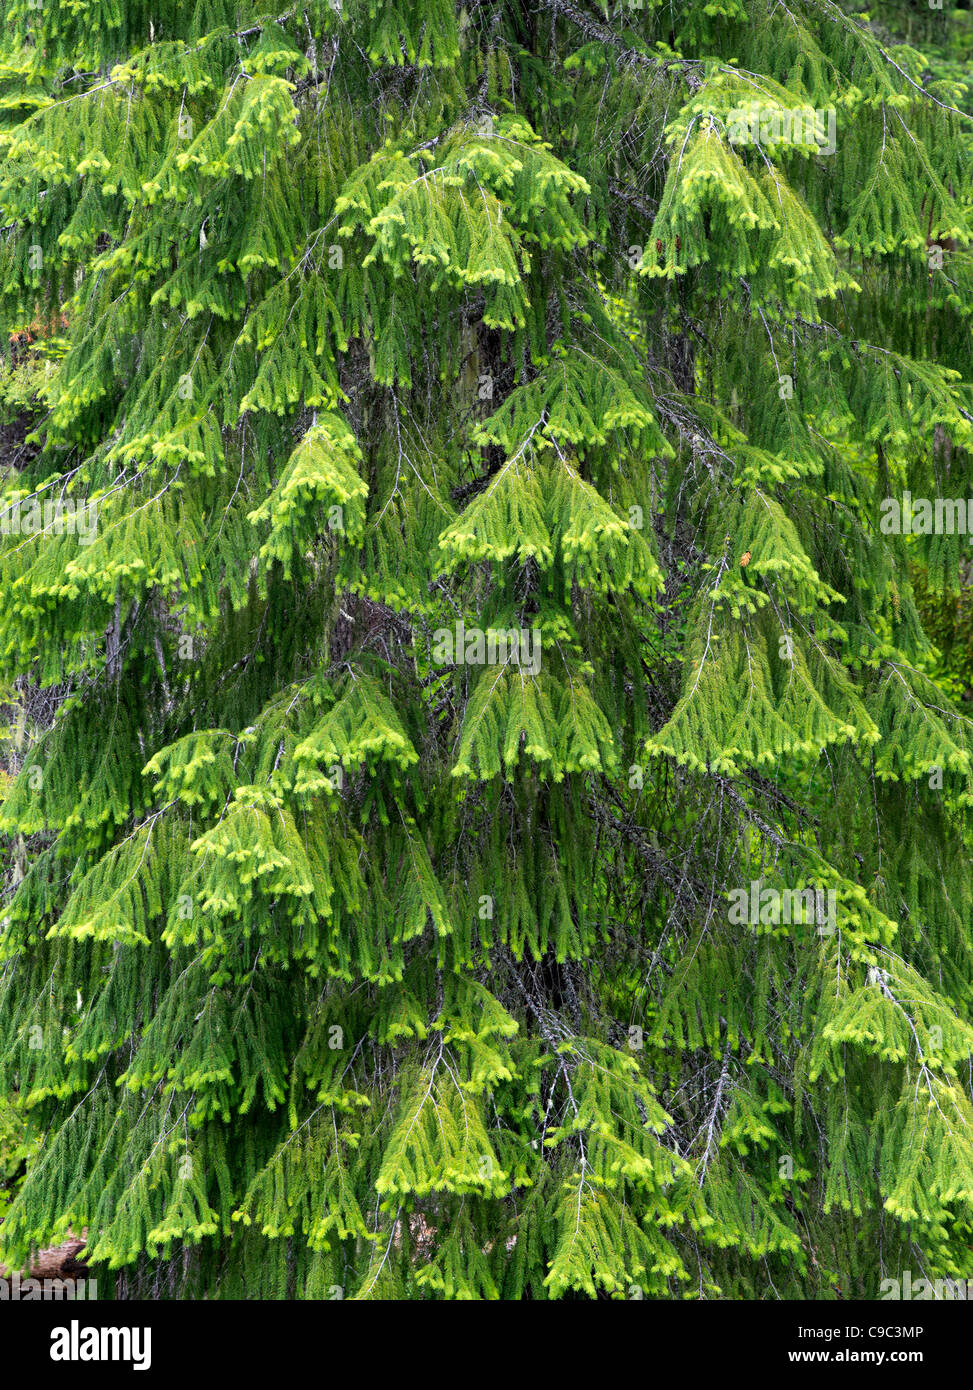 New spring growth on Douglas Fir tree. Rogue River National Forest, Oregon - Stock Image